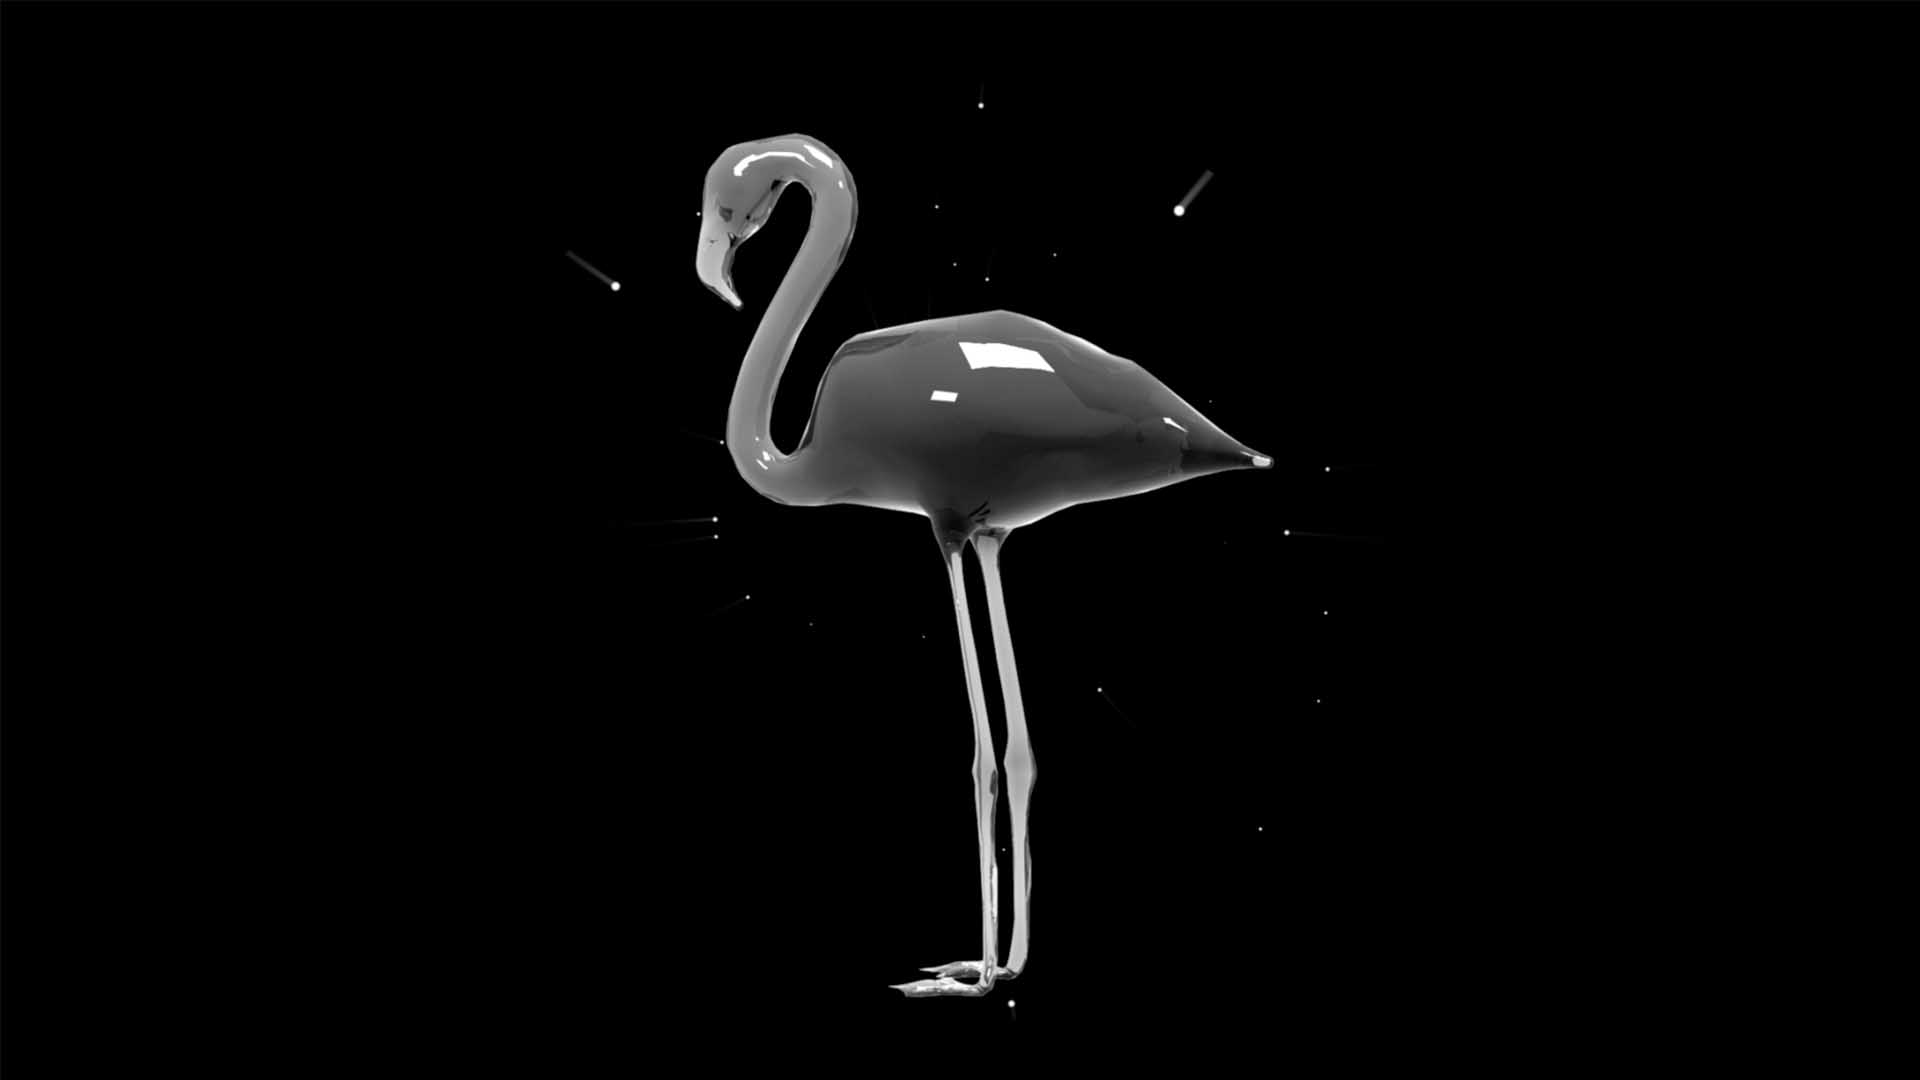 Liquid_Geometry_Statue_Isolated_on_Black_Background_Video_VJ_loop Flamingo